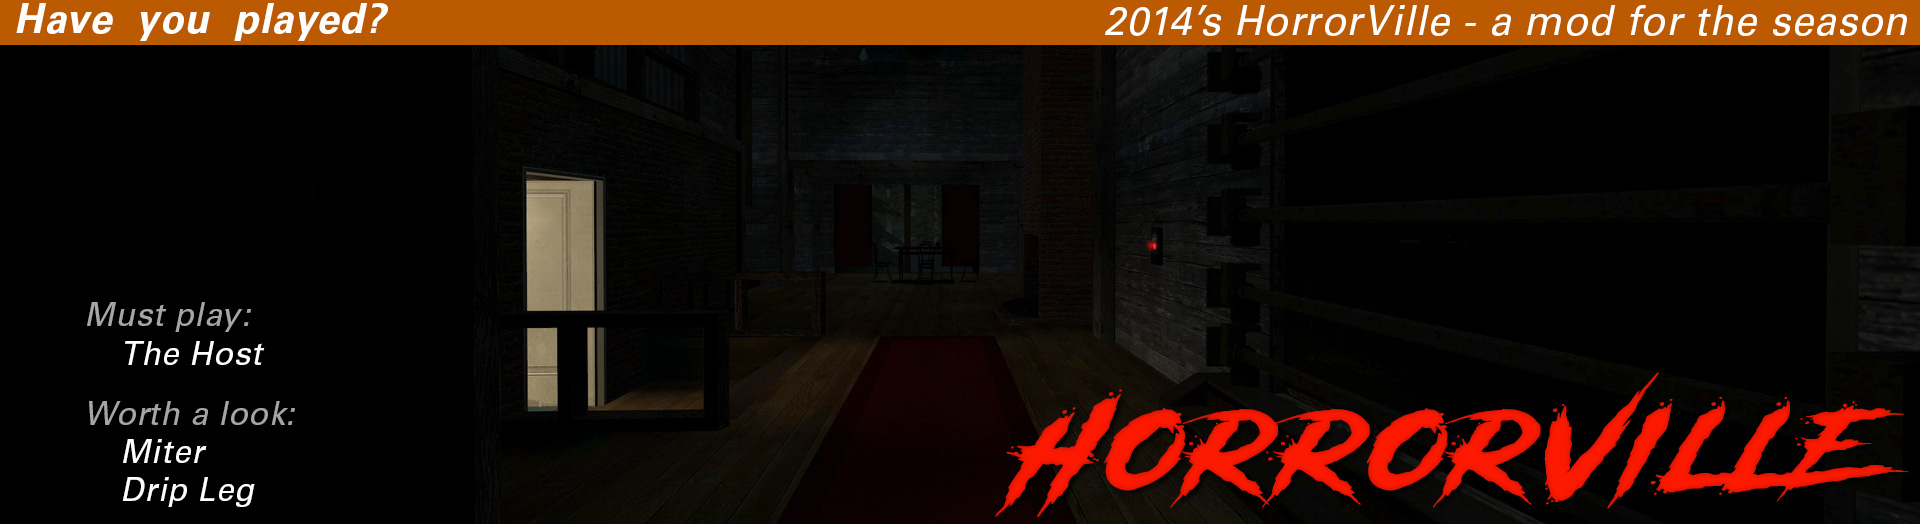 Have you played HorrorVille?